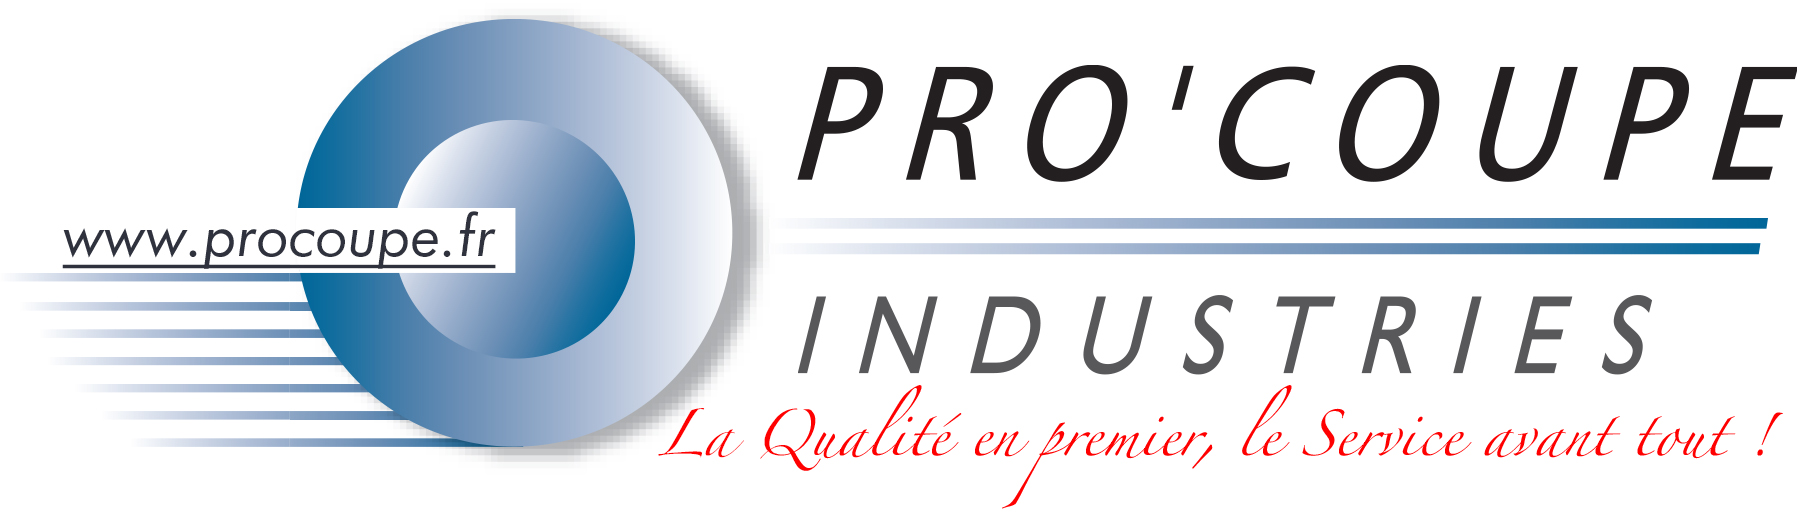 PROCOUPE INDUSTRIES